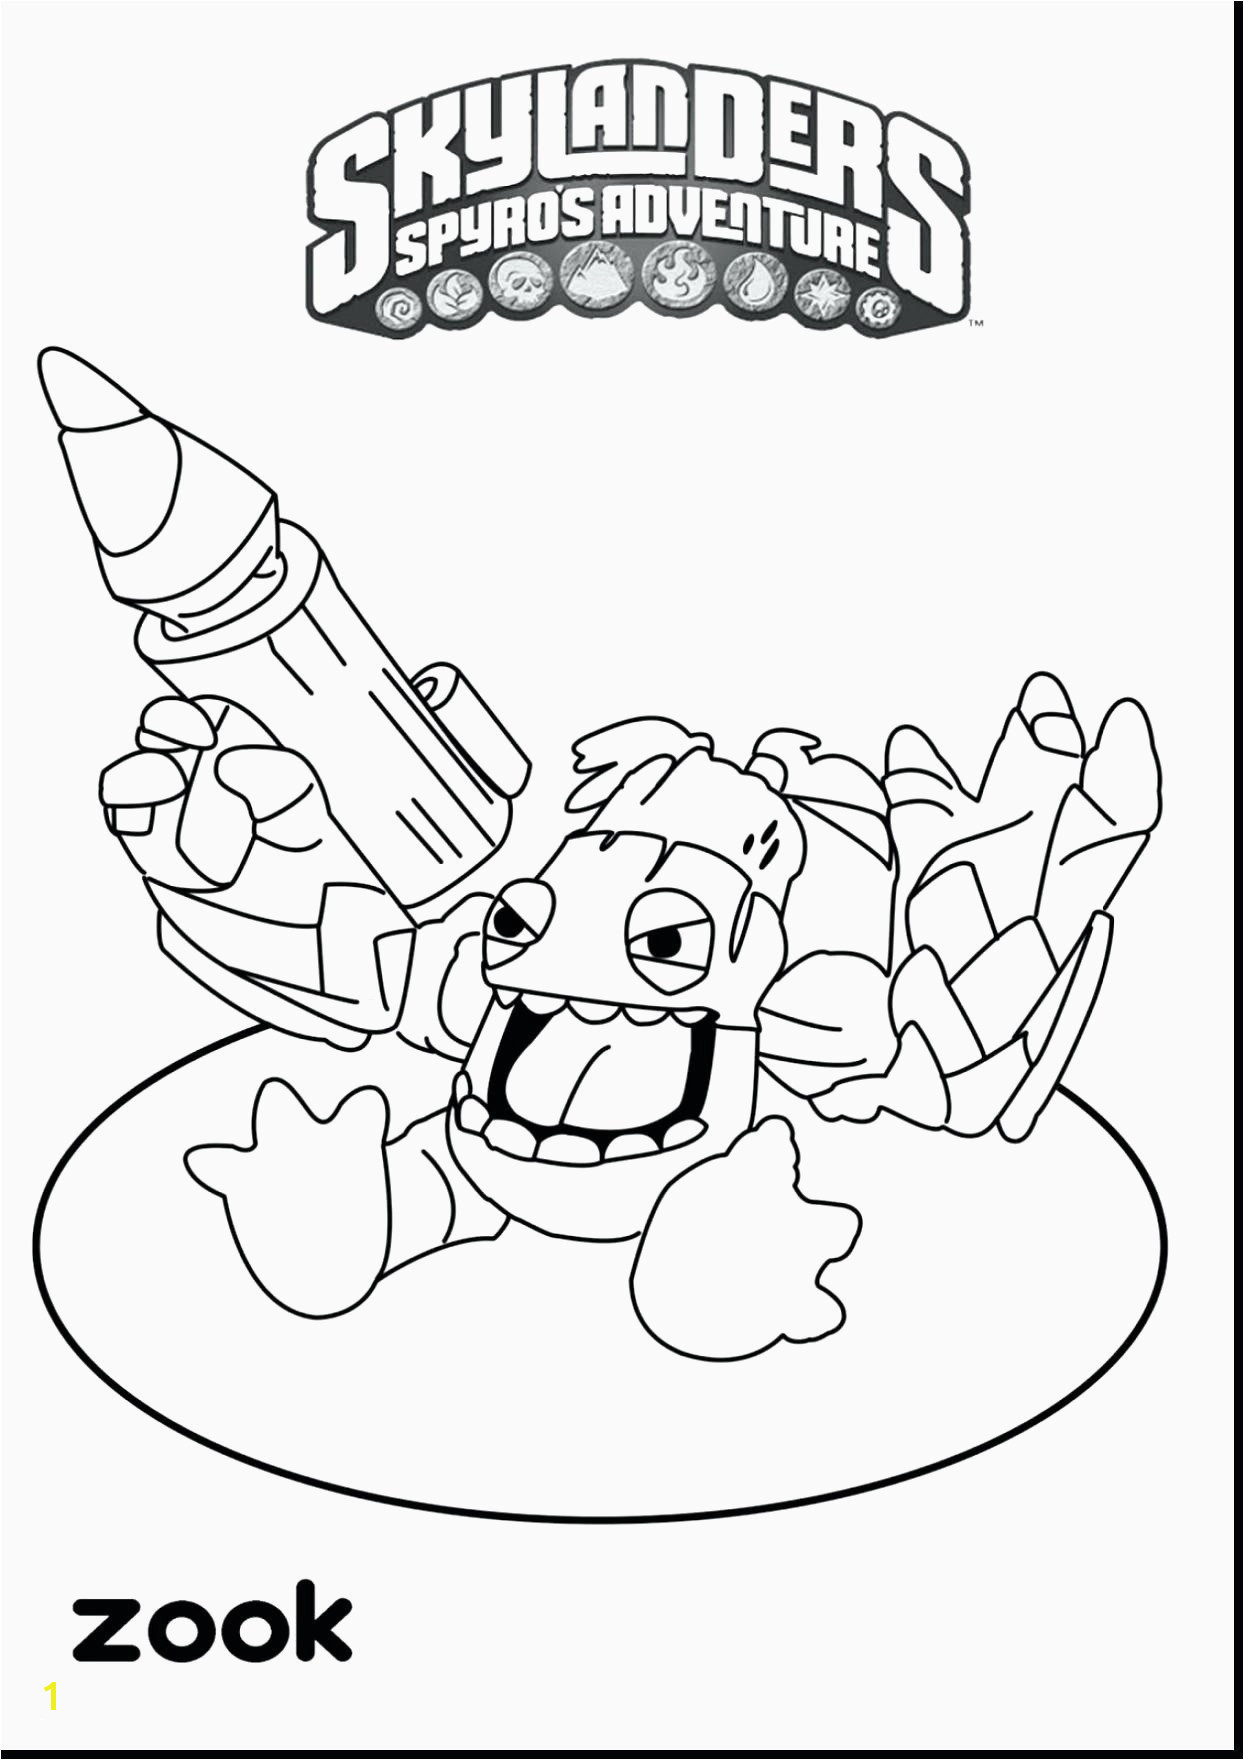 Thank You Coloring Pages Cool Coloring Page Inspirational Witch Coloring Pages New Crayola Pages 0d